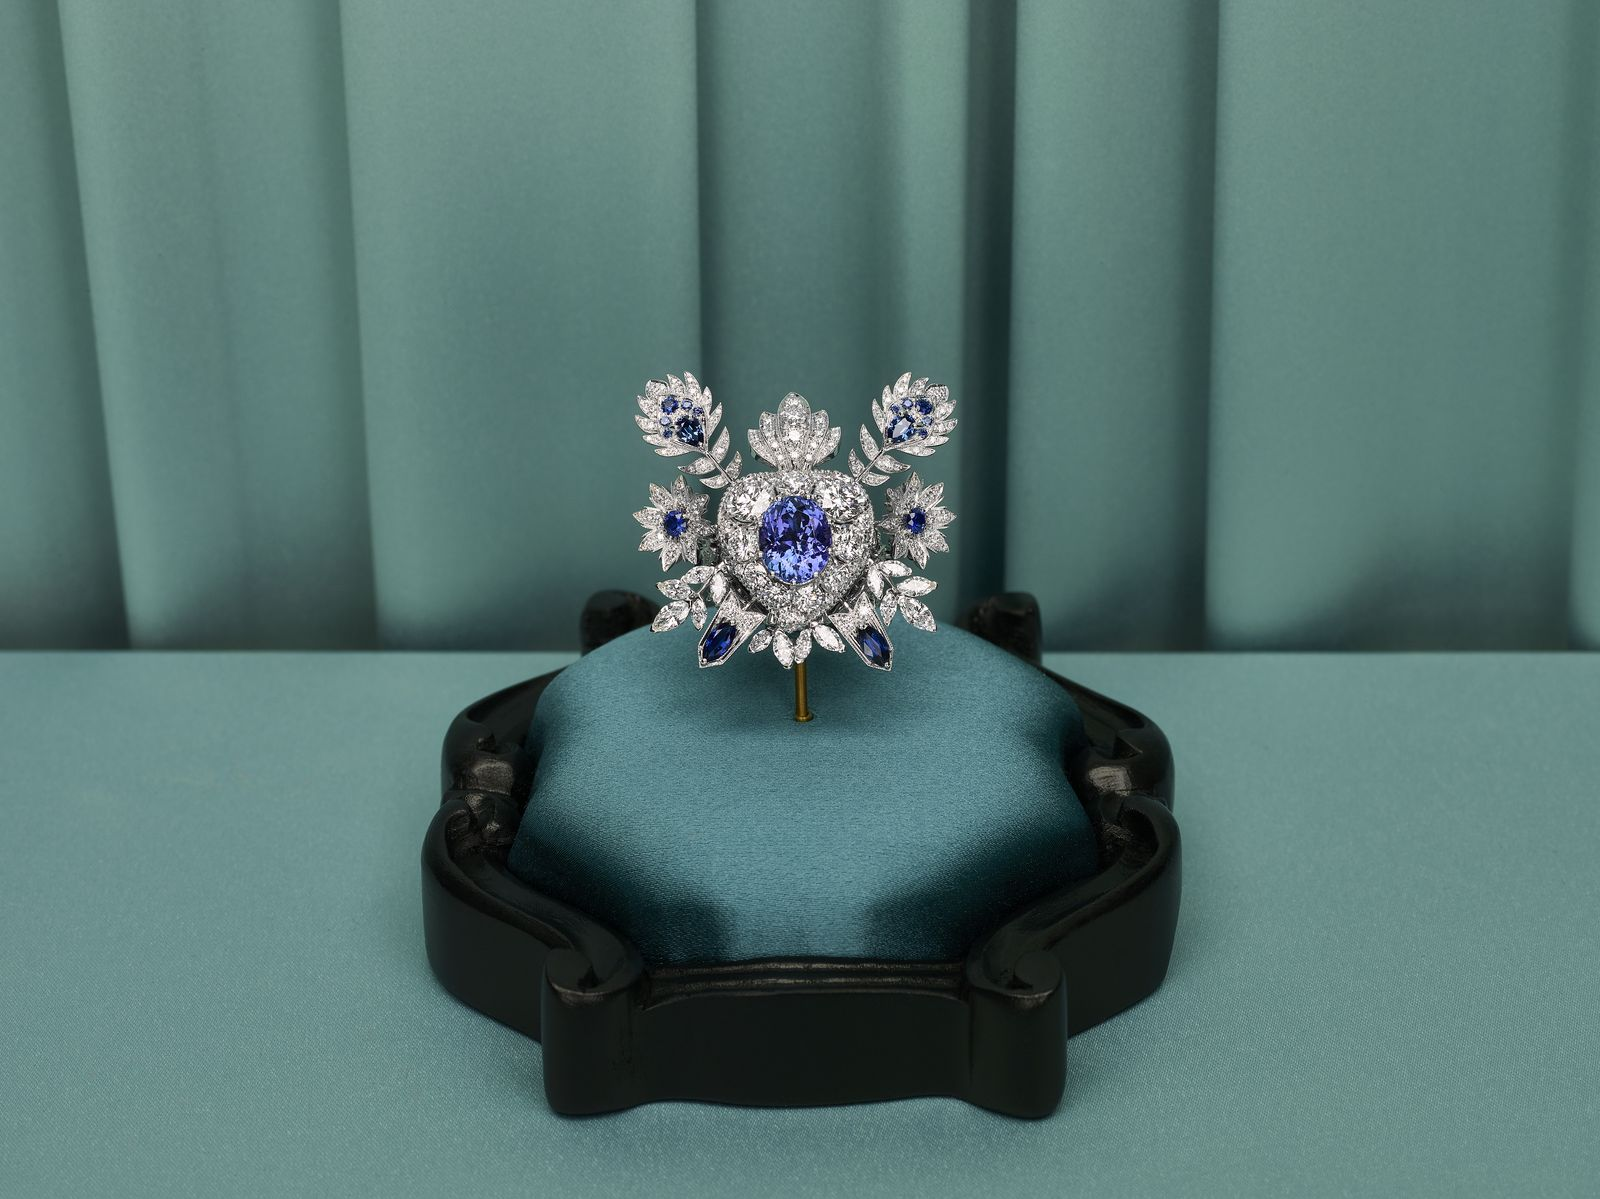 Gucci high Jewellery